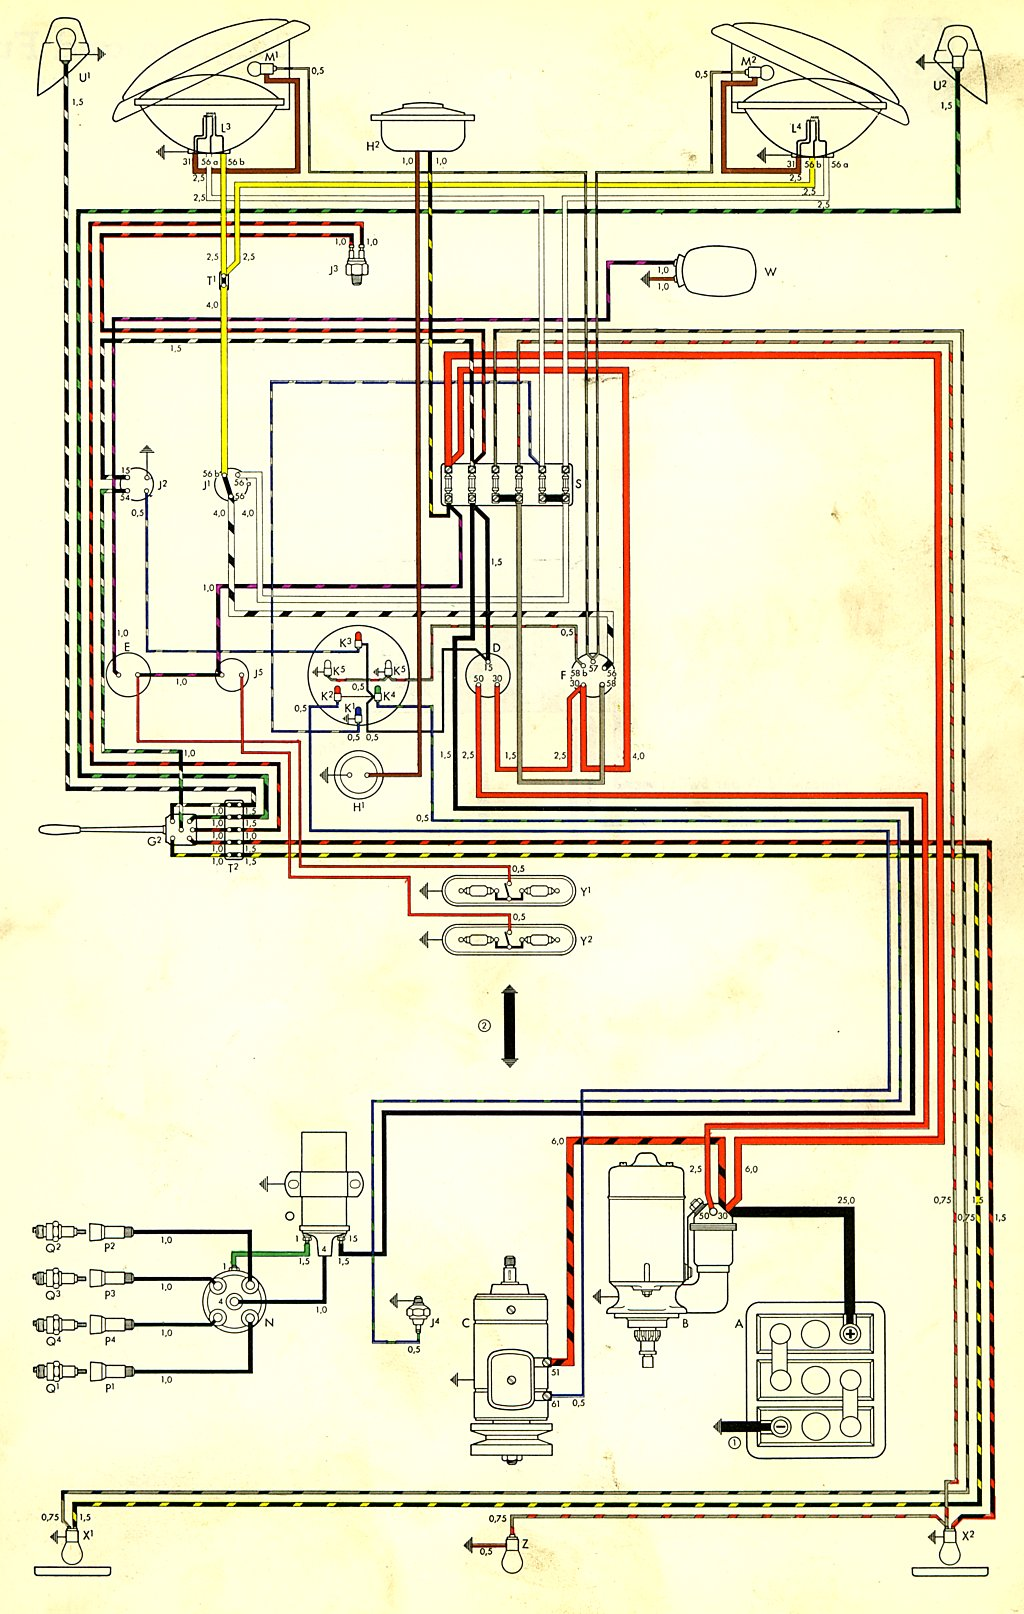 68 vw wiring diagram data wiring diagrams \u2022 1972 vw bug wiring diagram thesamba com type 2 wiring diagrams rh thesamba com 69 vw wiring diagram 68 vw beetle